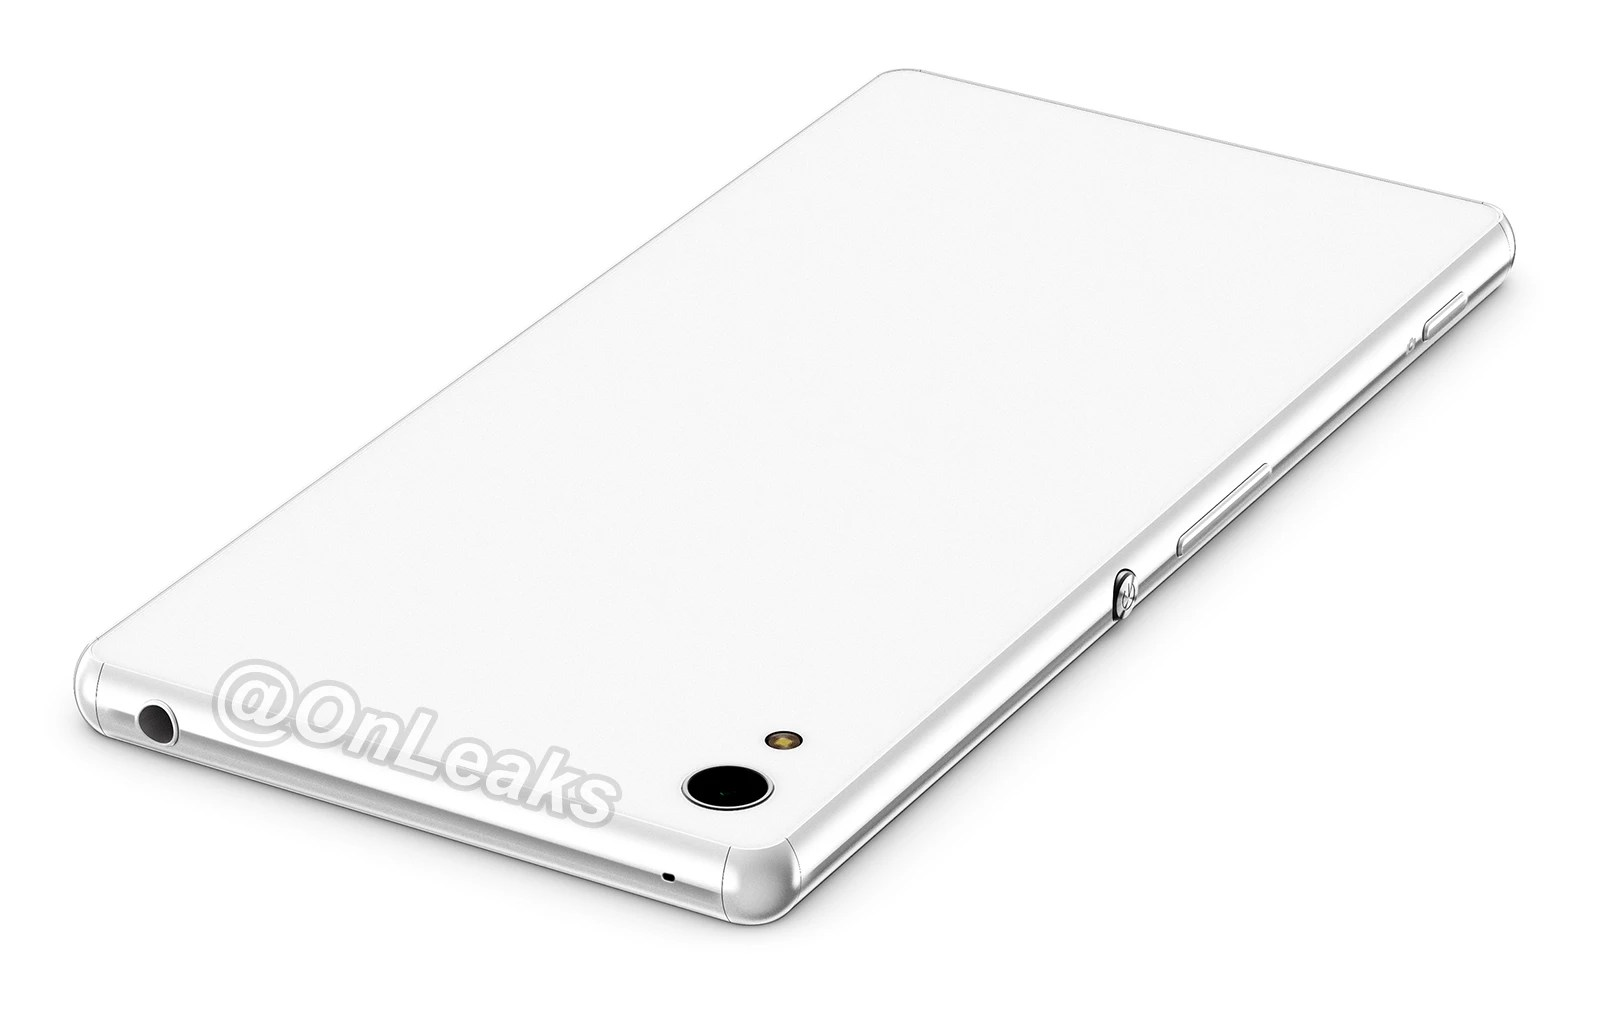 image from Sony Xperia Z4 rumor round-up: price, specs